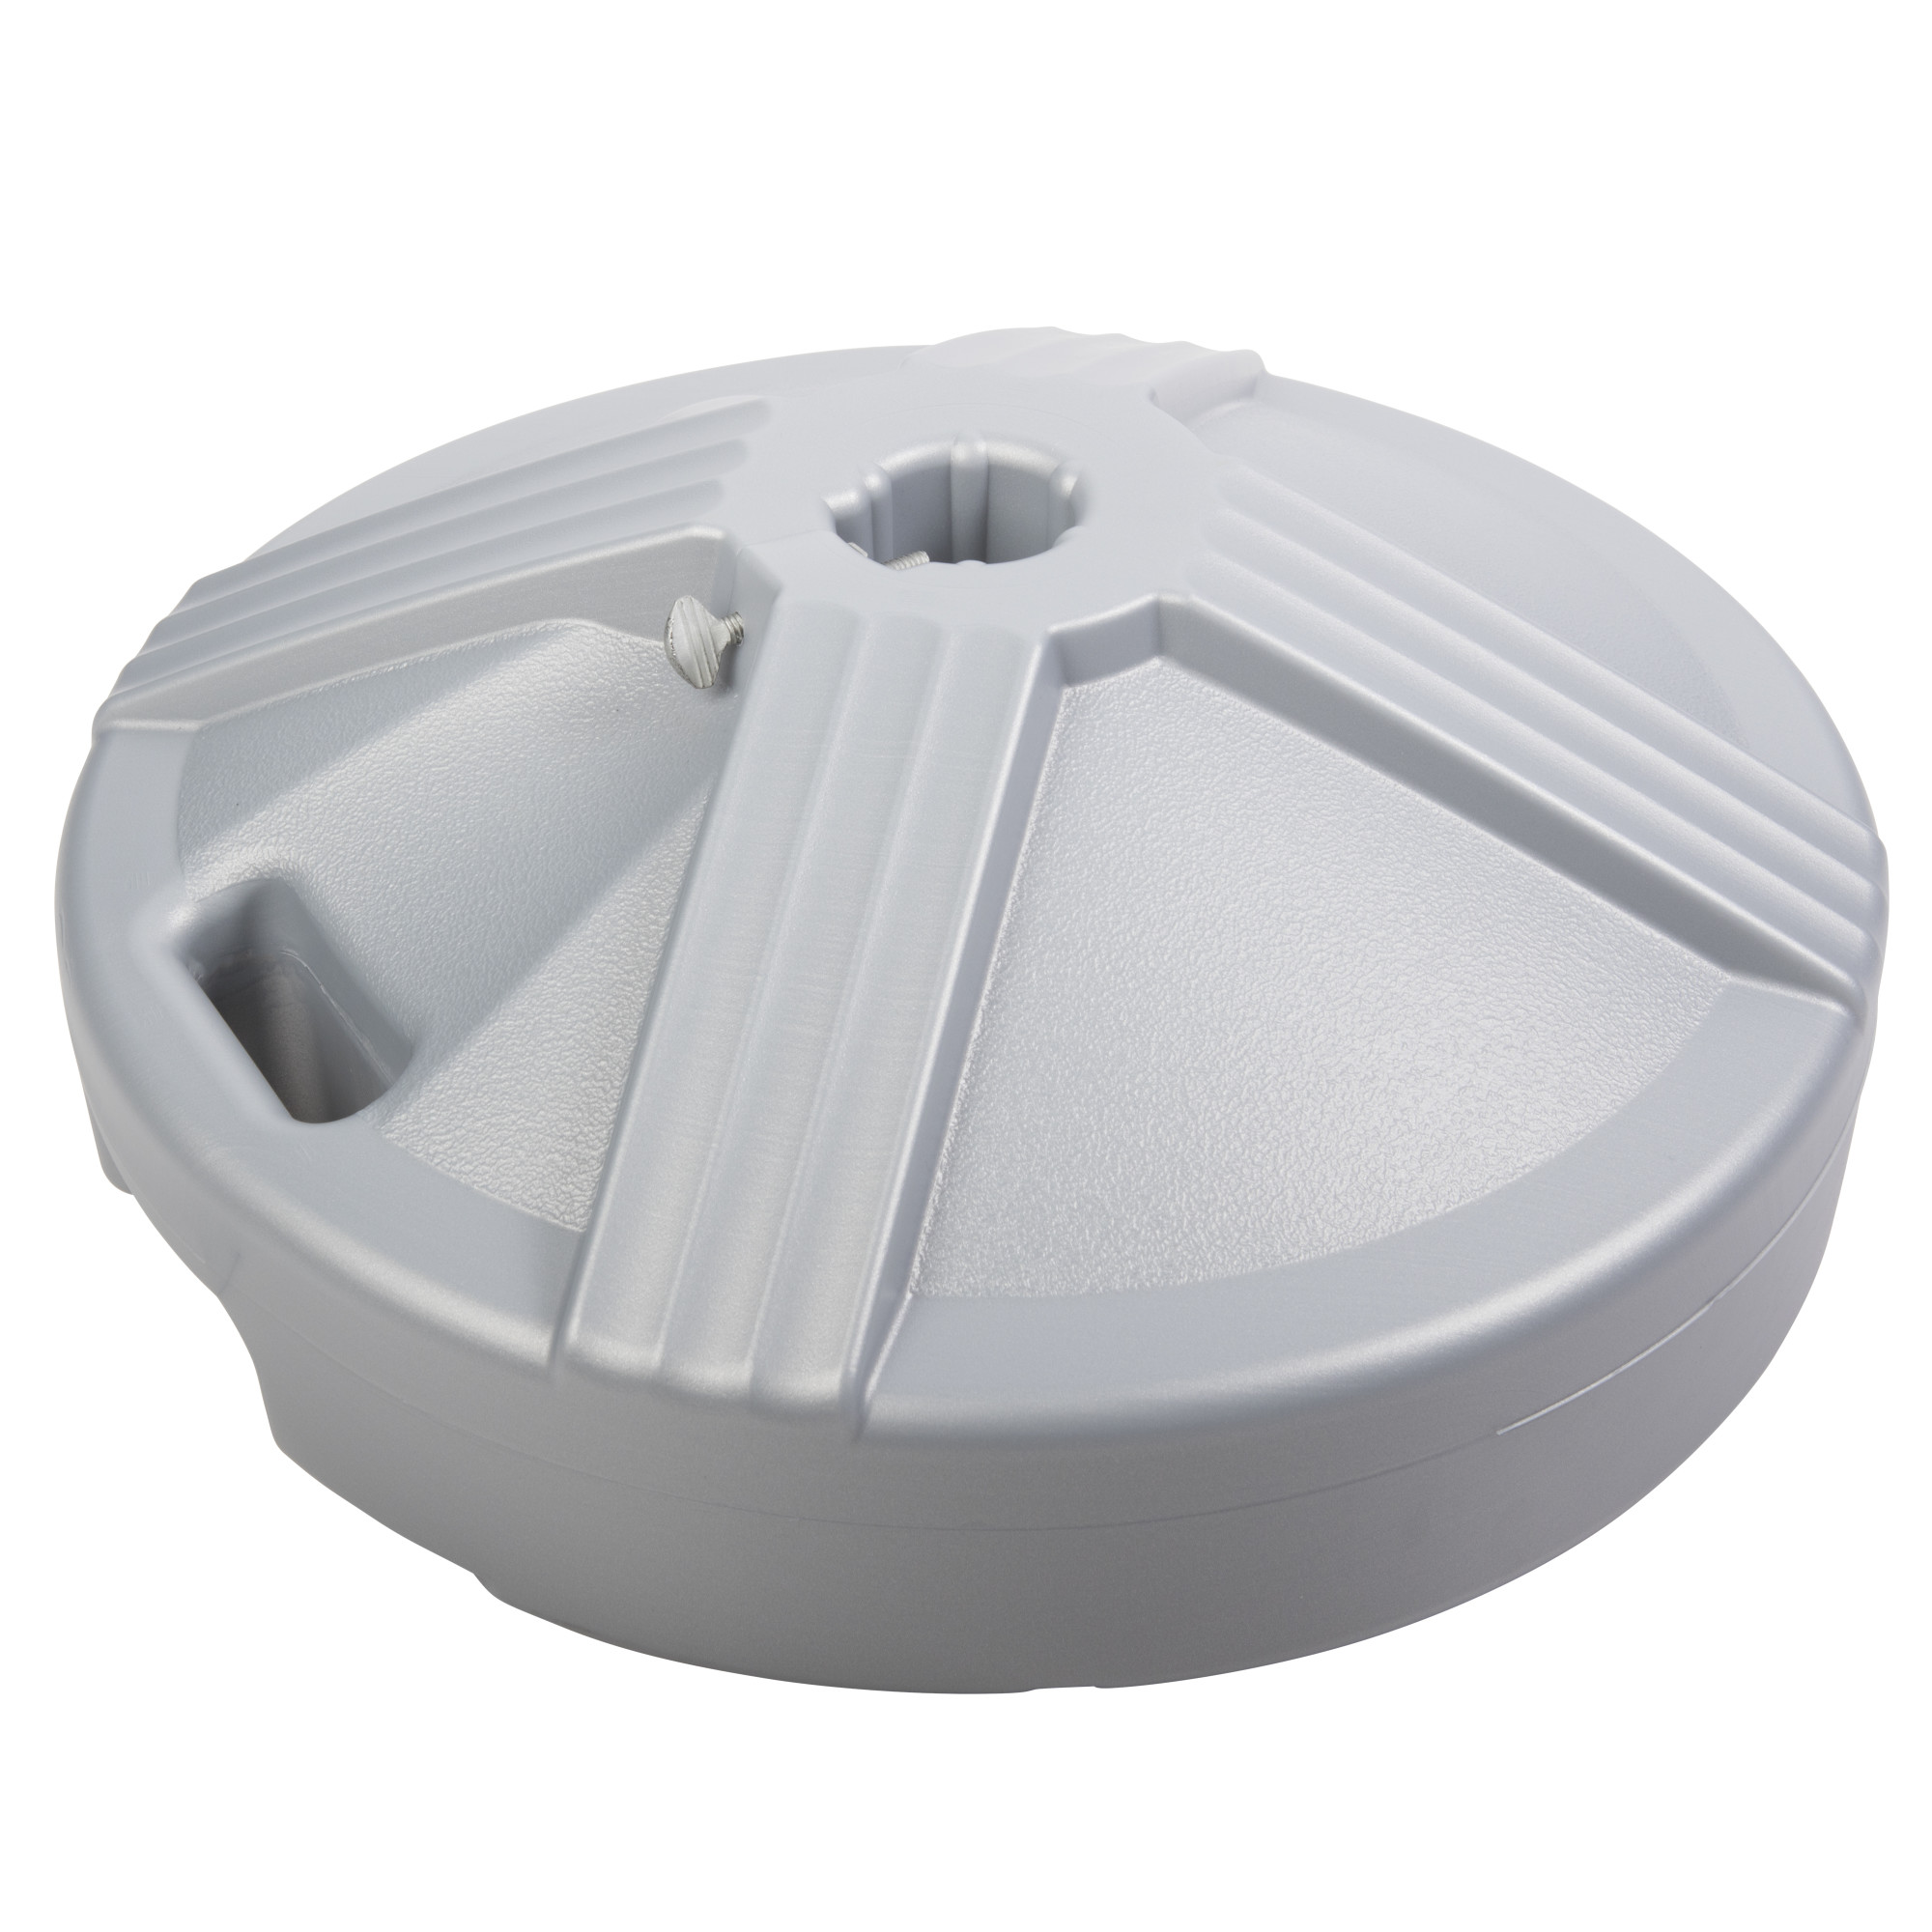 US Weight Durable Fillable Umbrella Base Designed to be Used with a Patio Table (Platinum Silver)